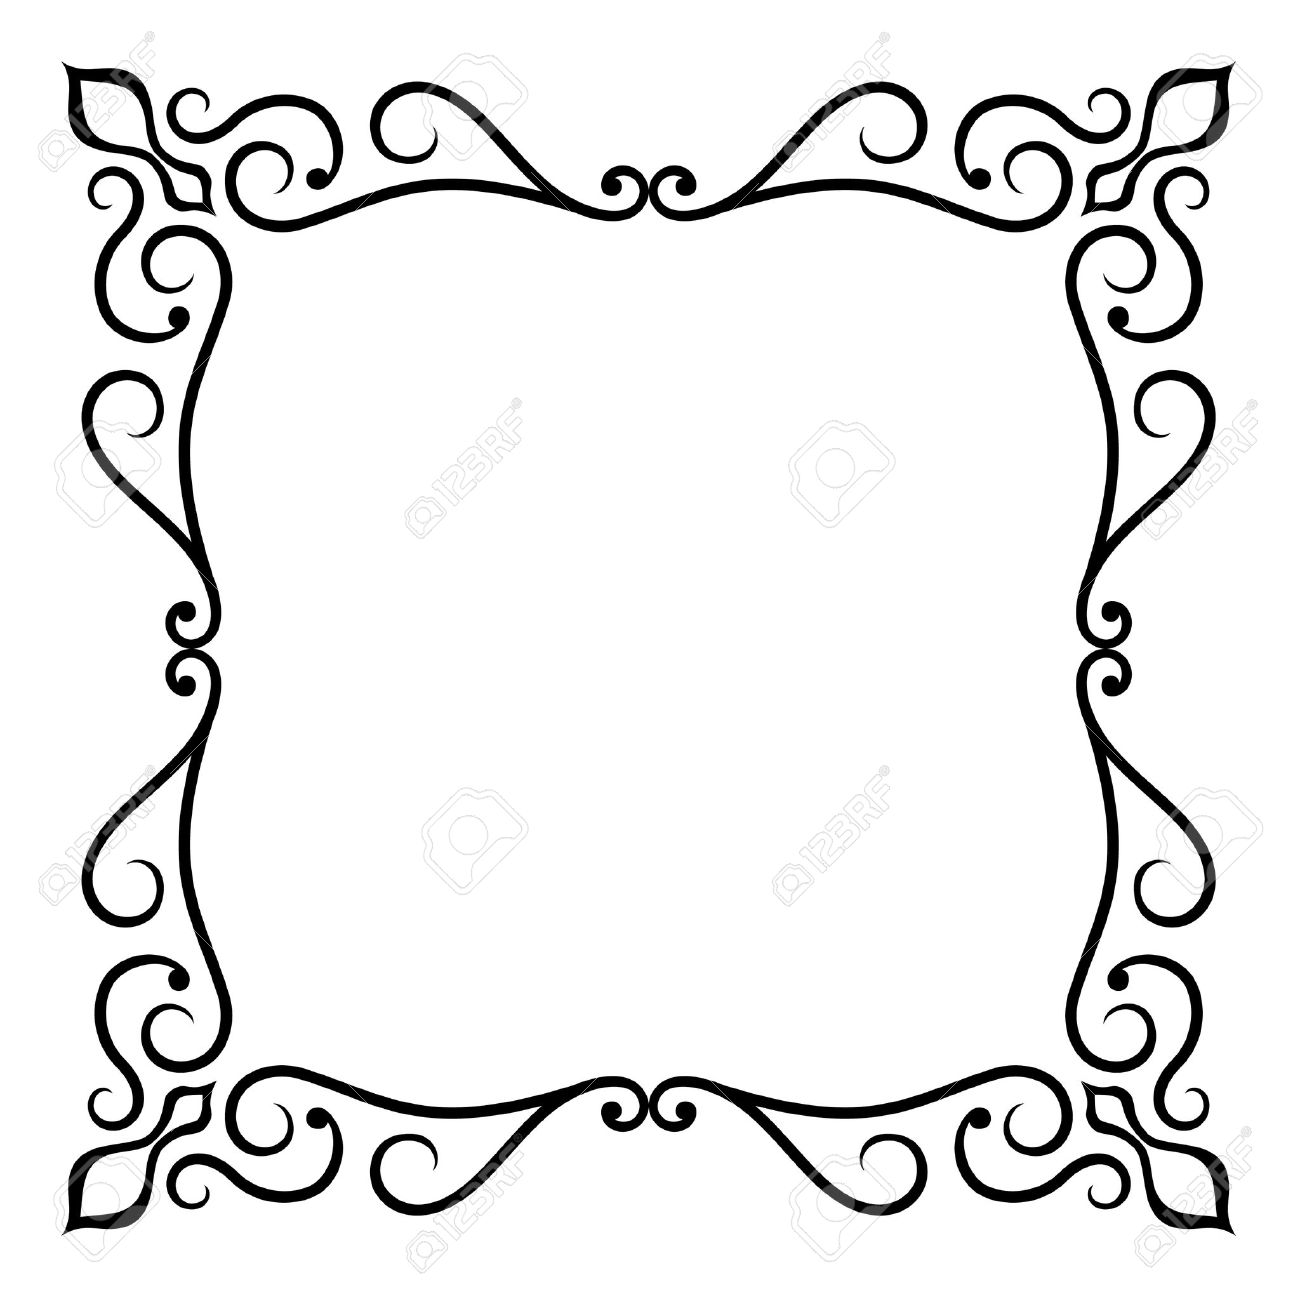 ornate frame royalty free cliparts vectors and stock illustration rh 123rf com ornate frame vector free download ornate frame vector free download